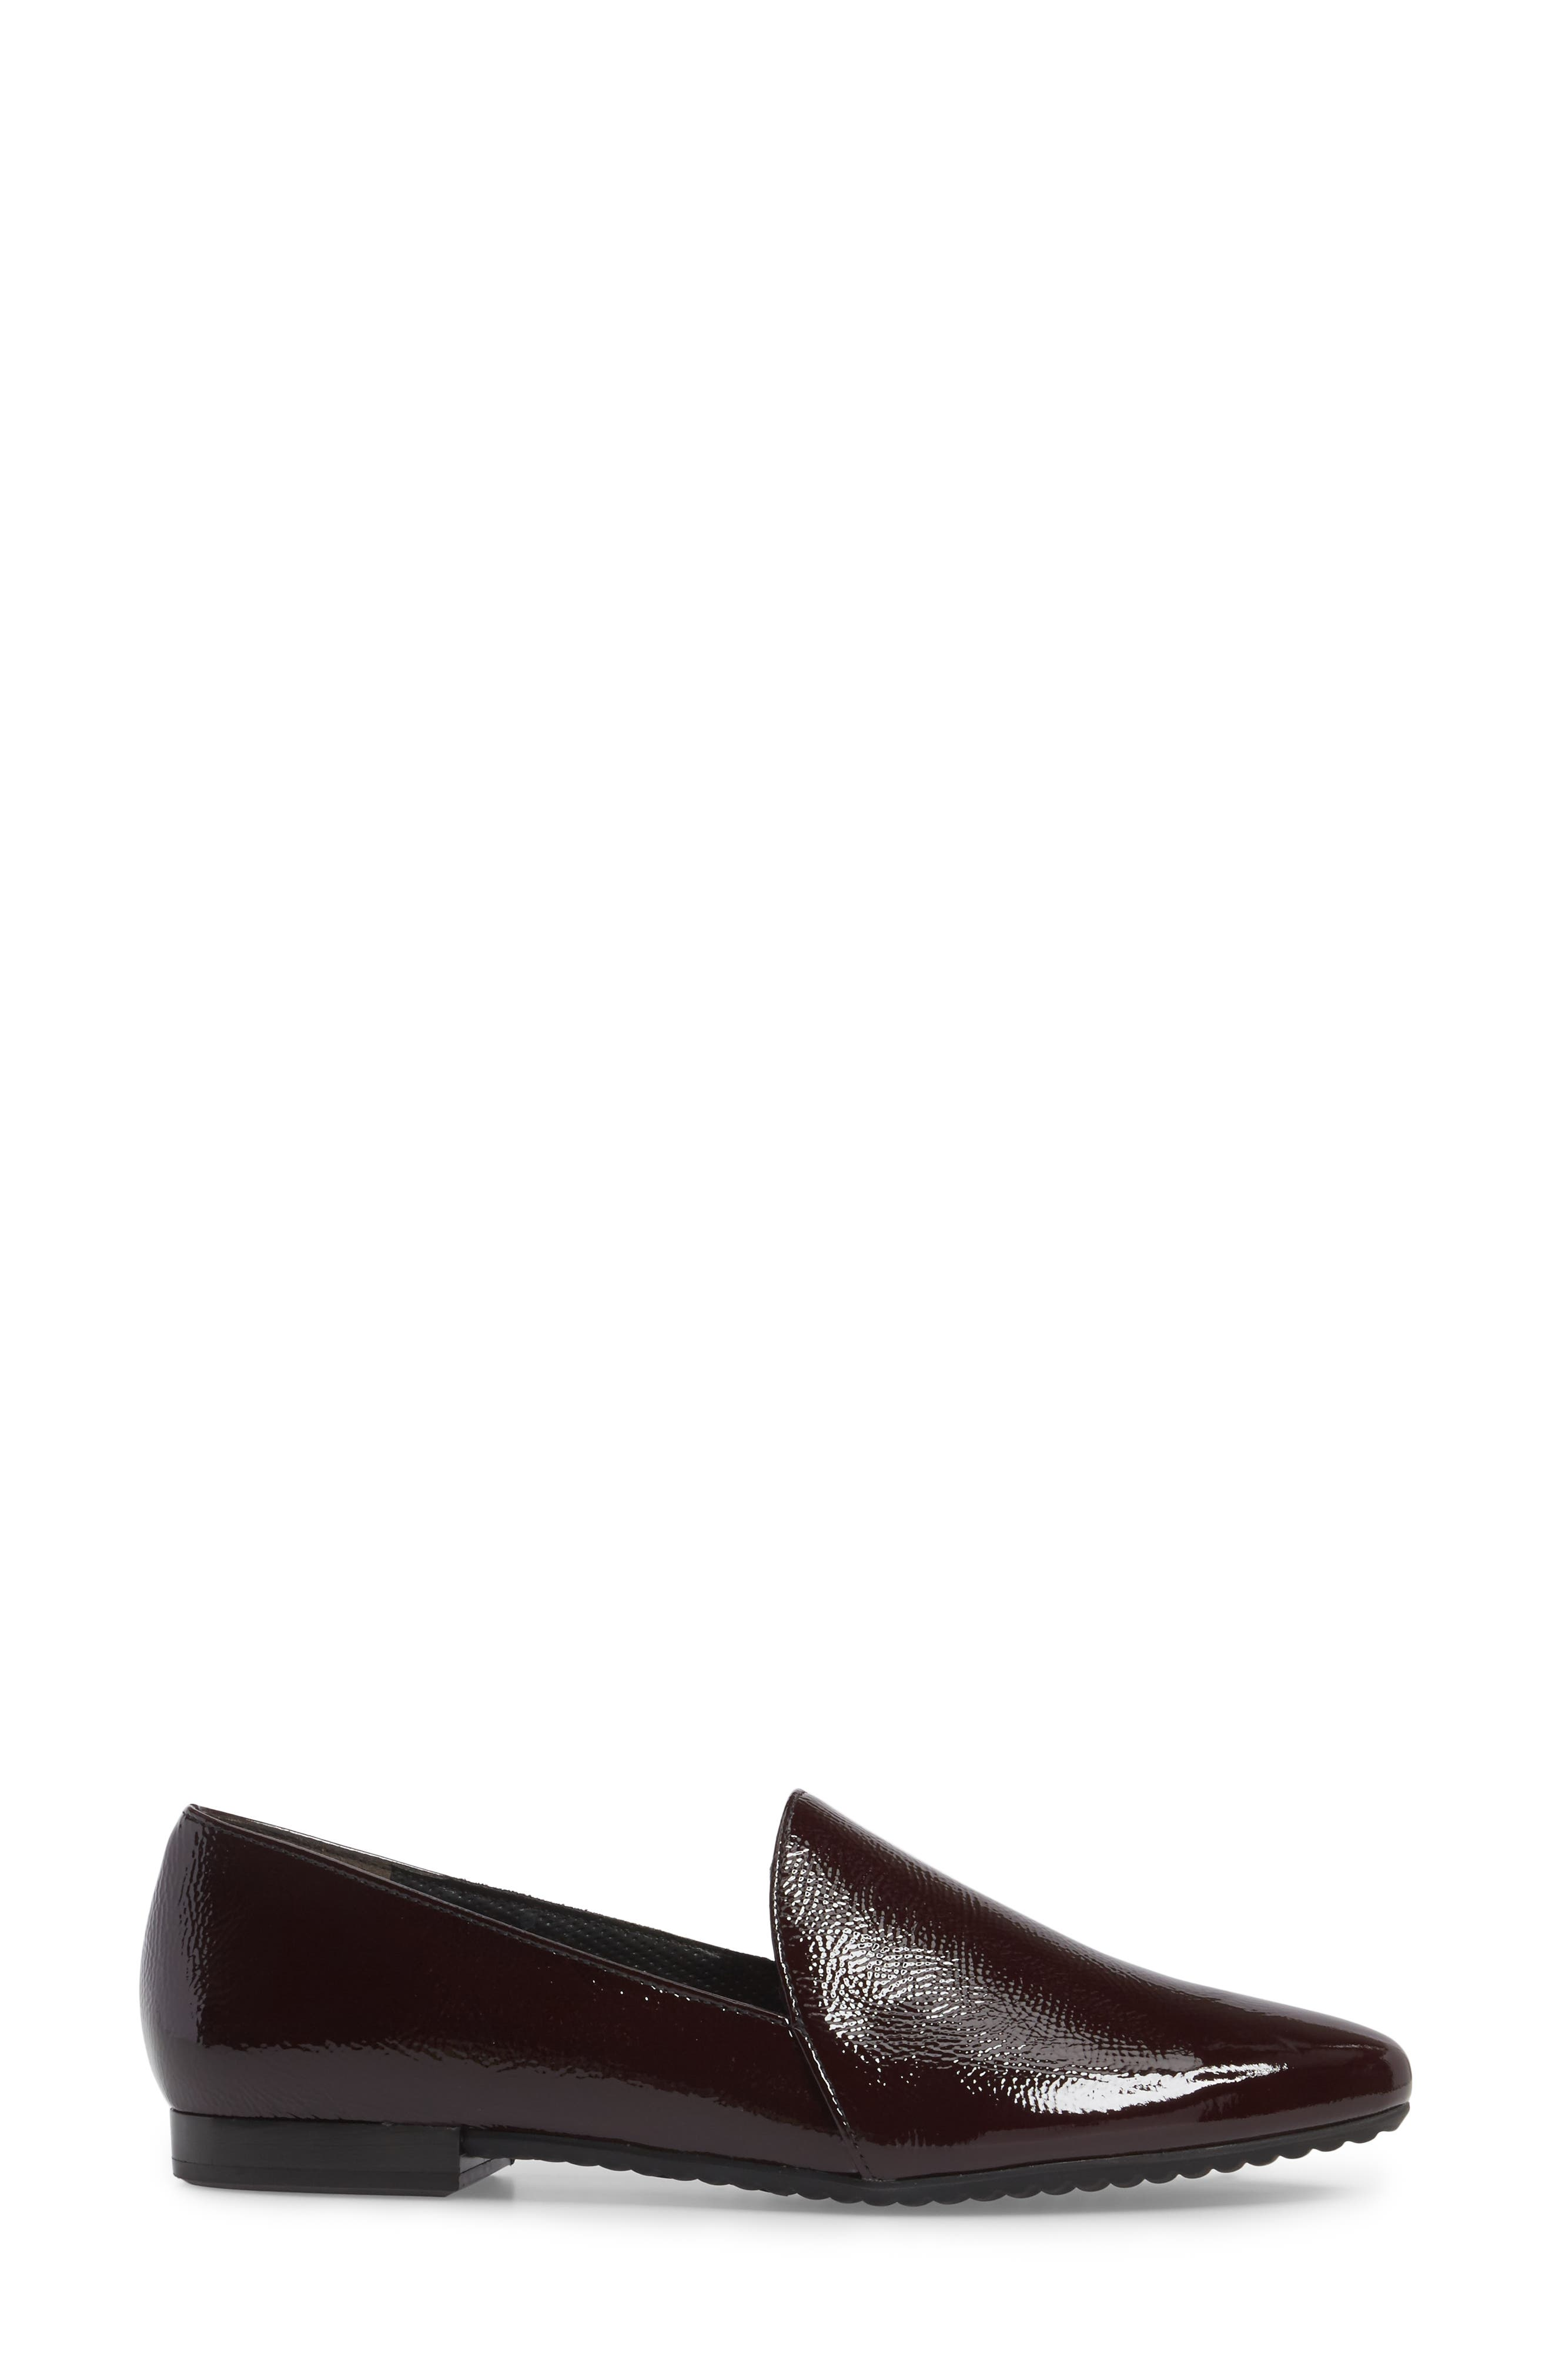 Naomi Loafer,                             Alternate thumbnail 9, color,